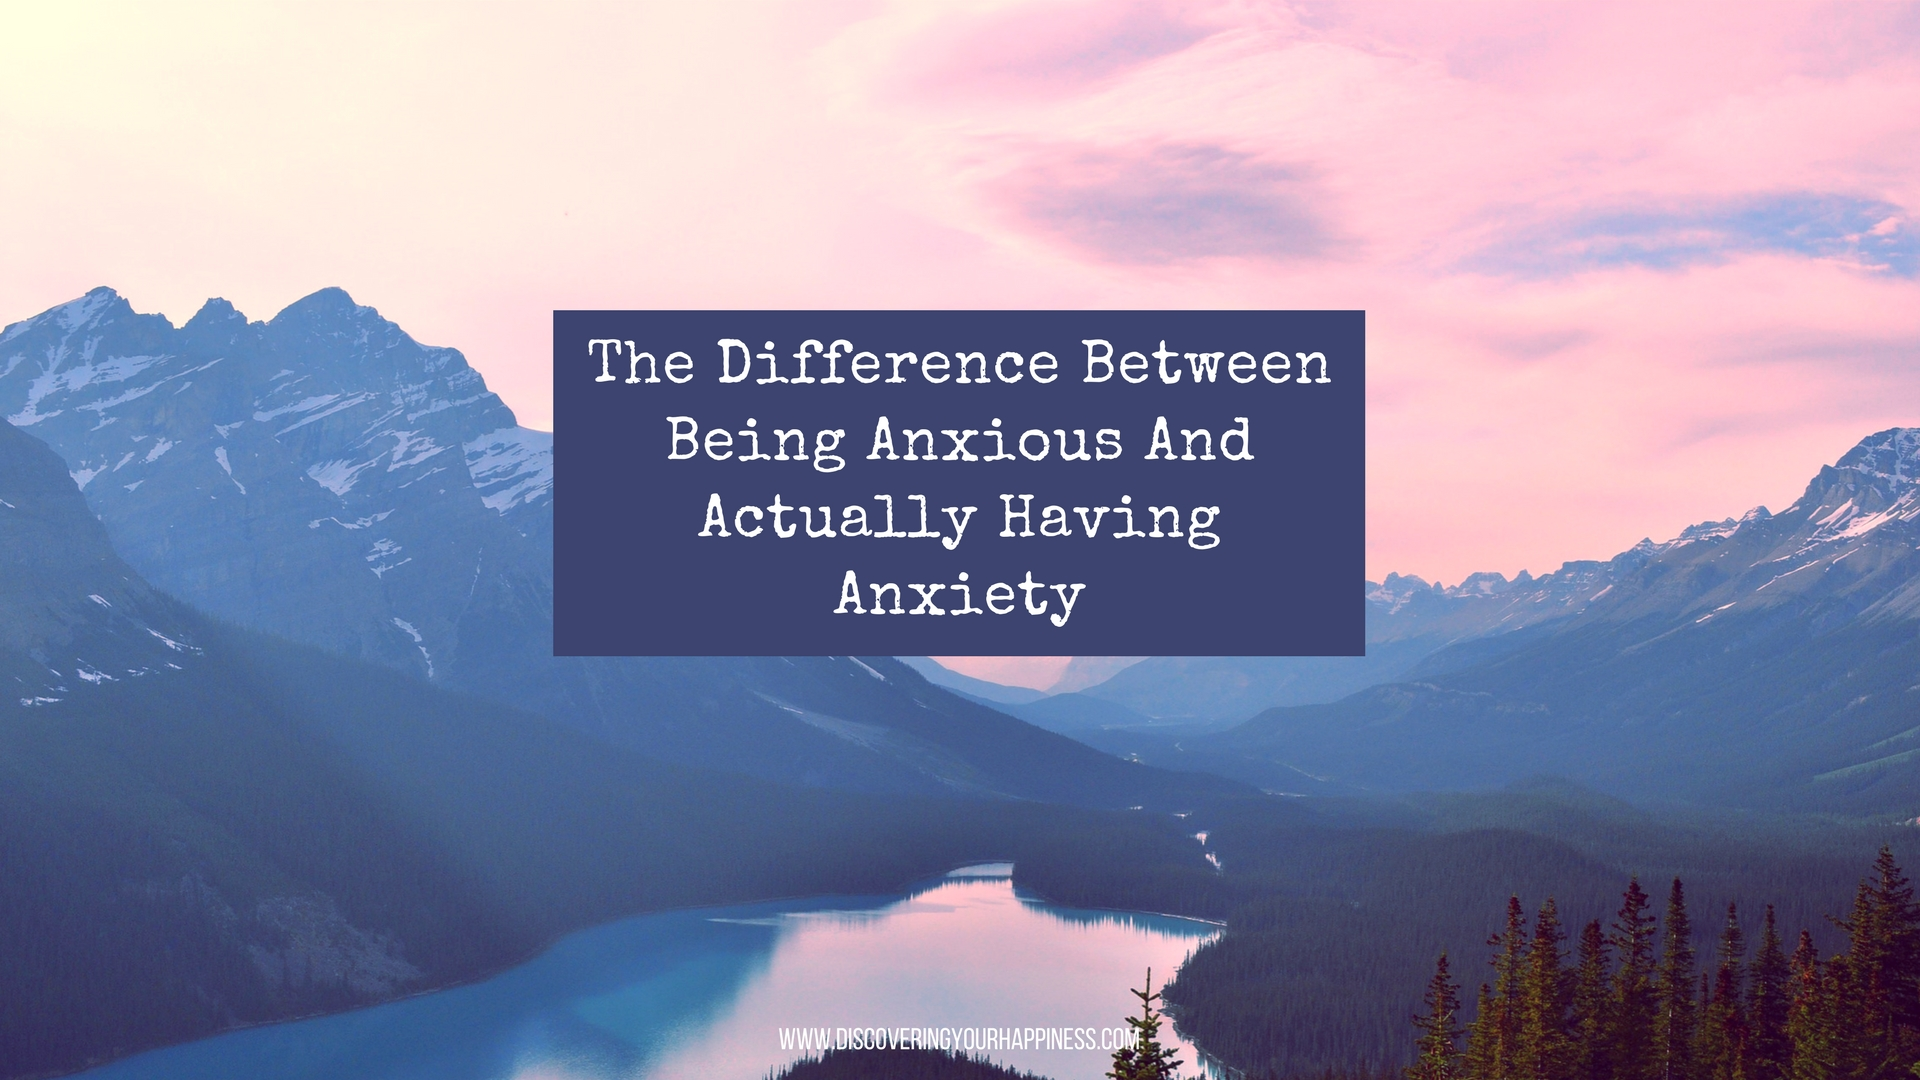 The Difference Between Being Anxious And Actually Having Anxiety